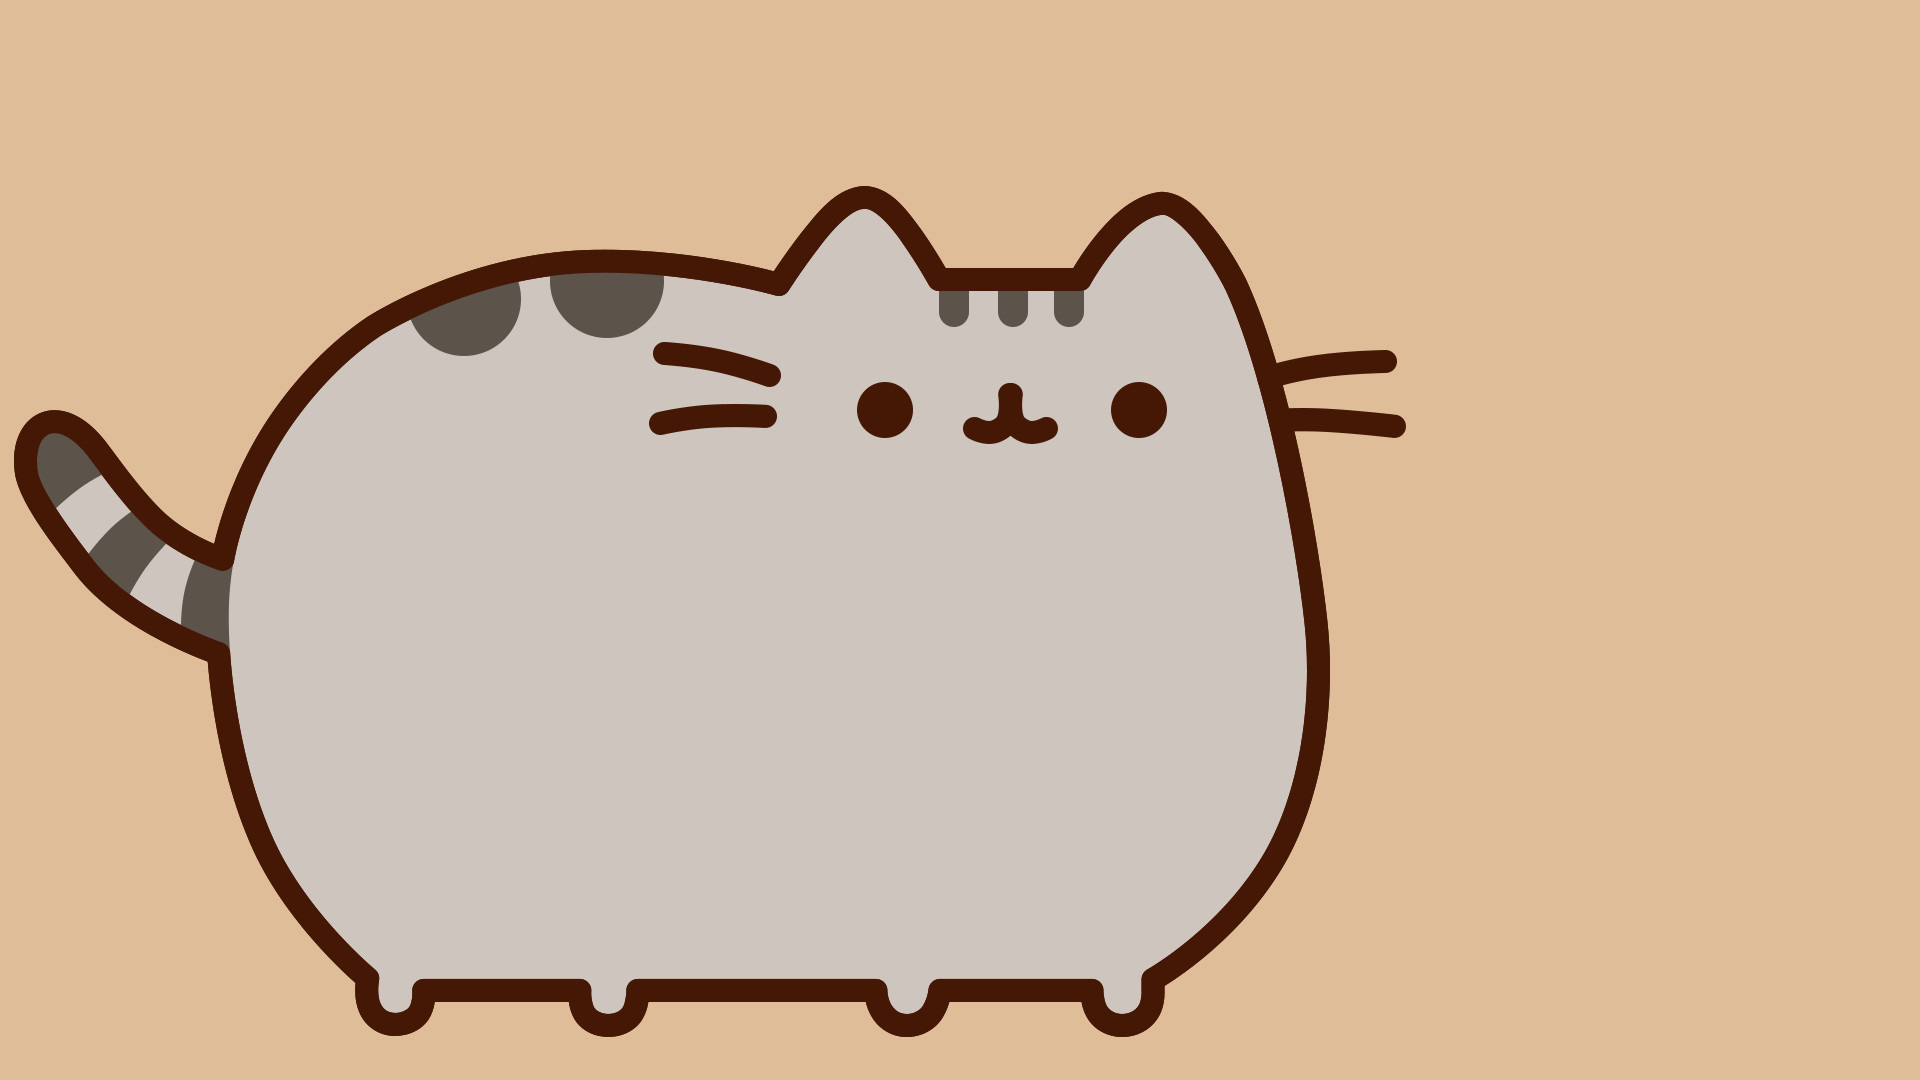 Awesome Aesthetic Cartoon Cat Wallpaper Hd For Mobile Photos